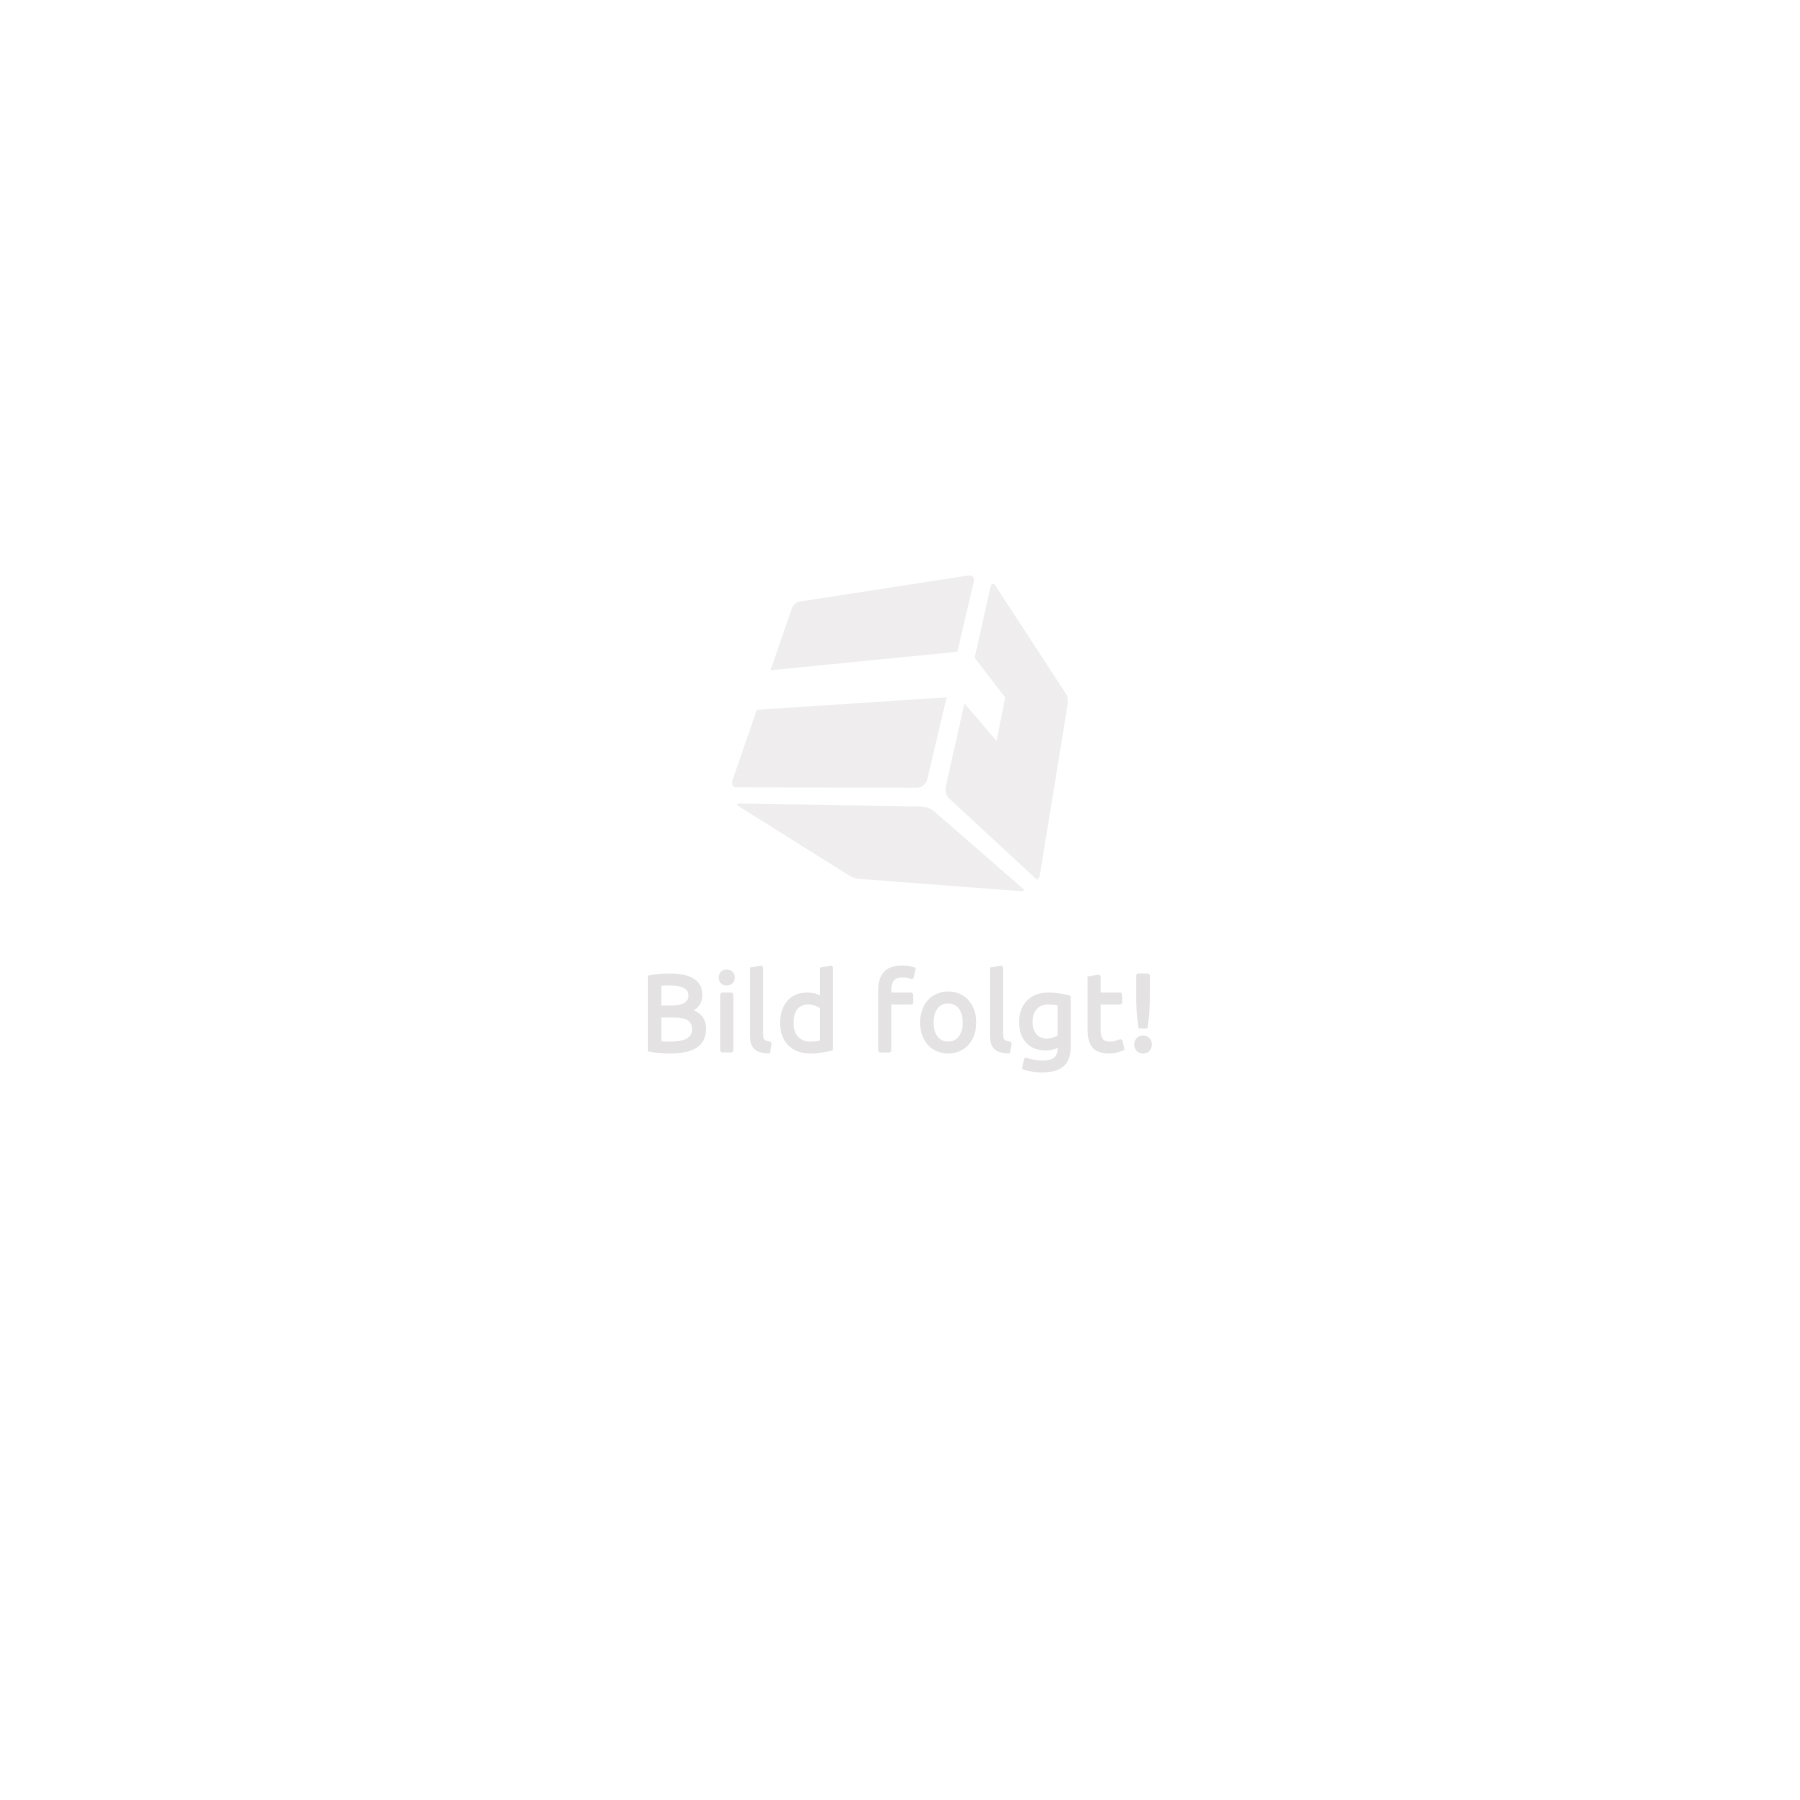 Porte accord on d int rieur pliante porte coulissante - Porte d interieur laquee blanc ...